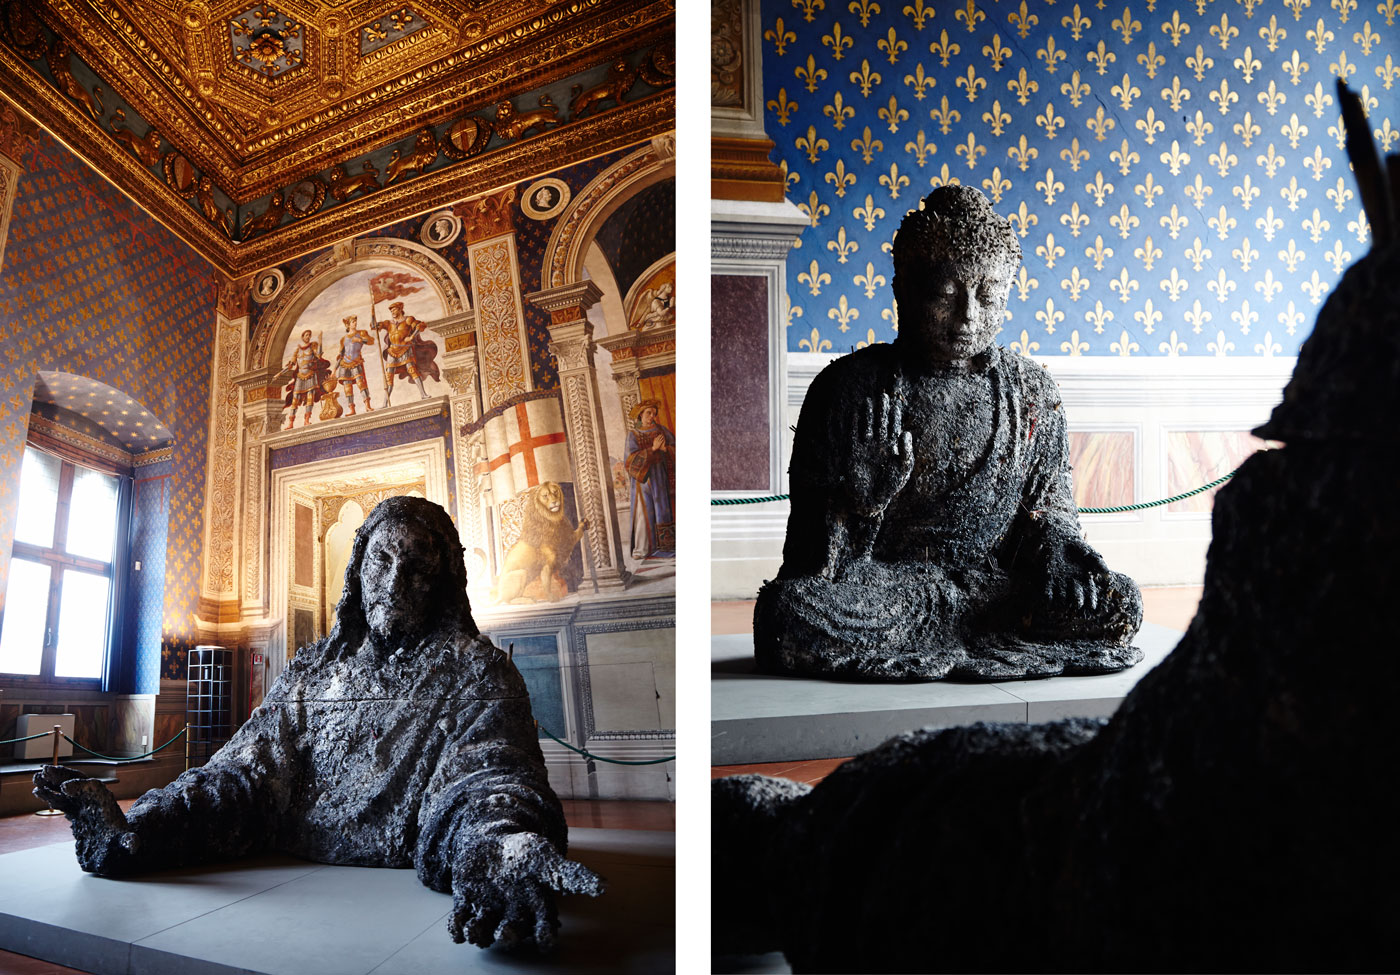 Zhang Huan: Jesus and Buddha in Ash, Palazzo Vecchio, Florence, Italy